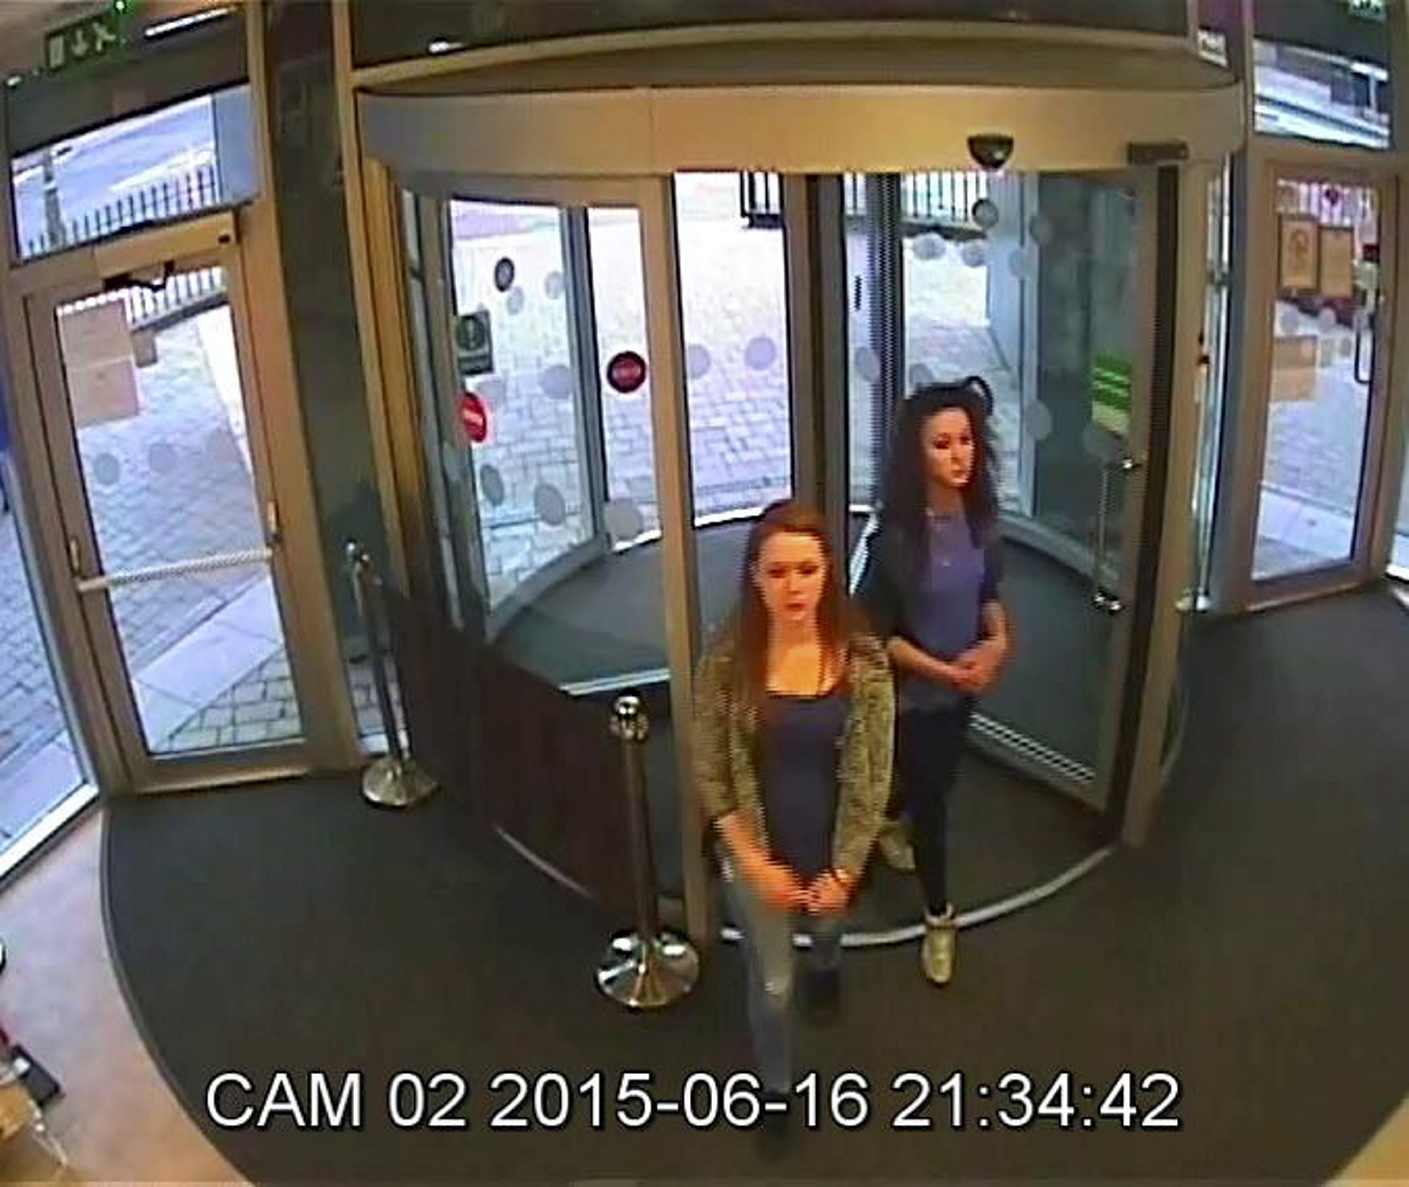 CCTV still from a hostel in Edinburgh shows Lilly and Nicole last night.